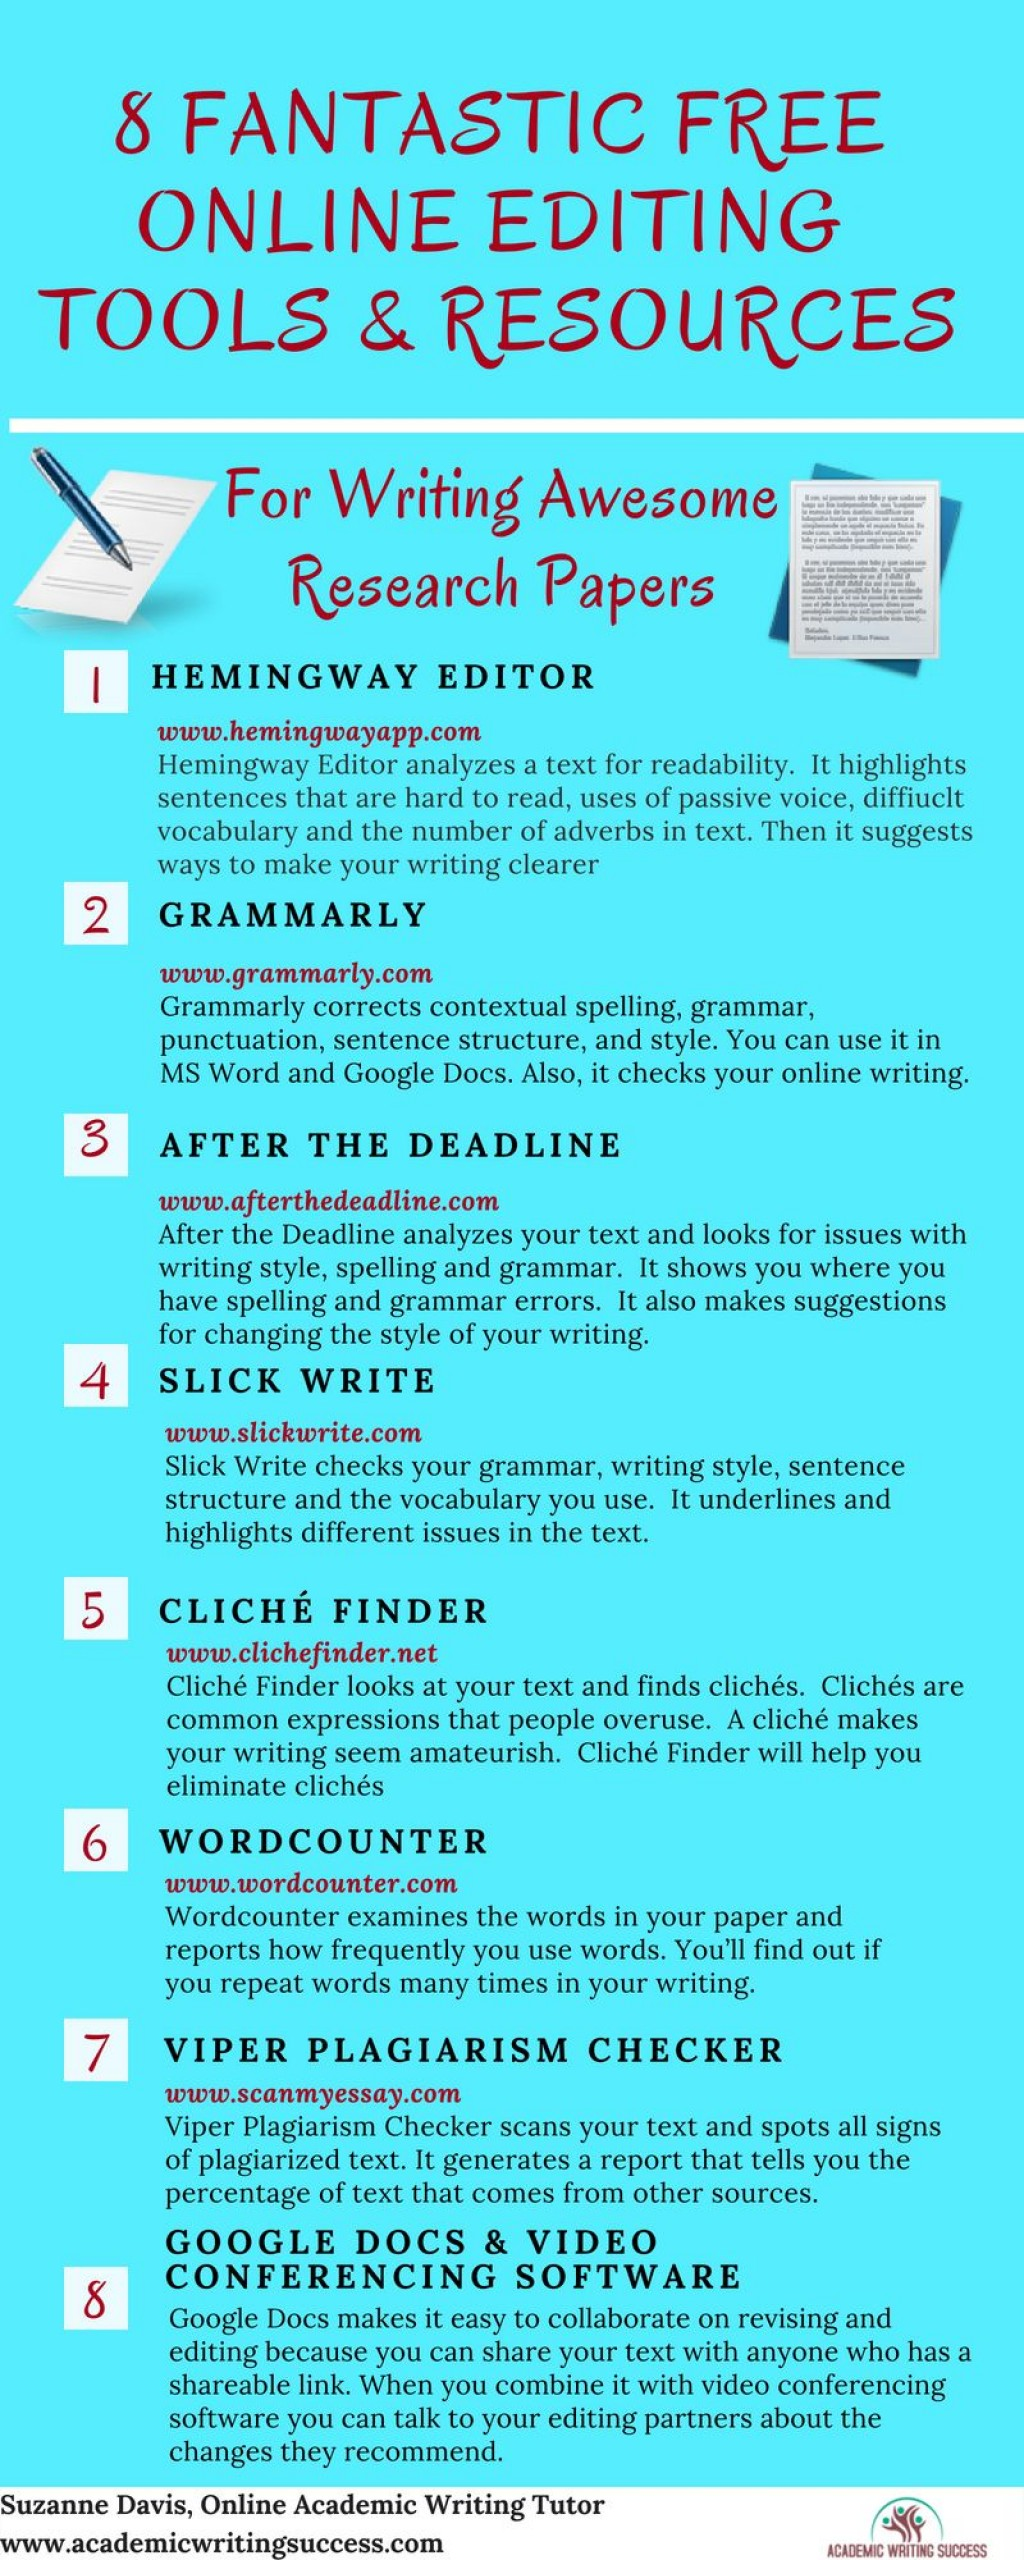 001 Research Paper Free Online Stirring Papers Plagiarism Checker Psychology Download Large